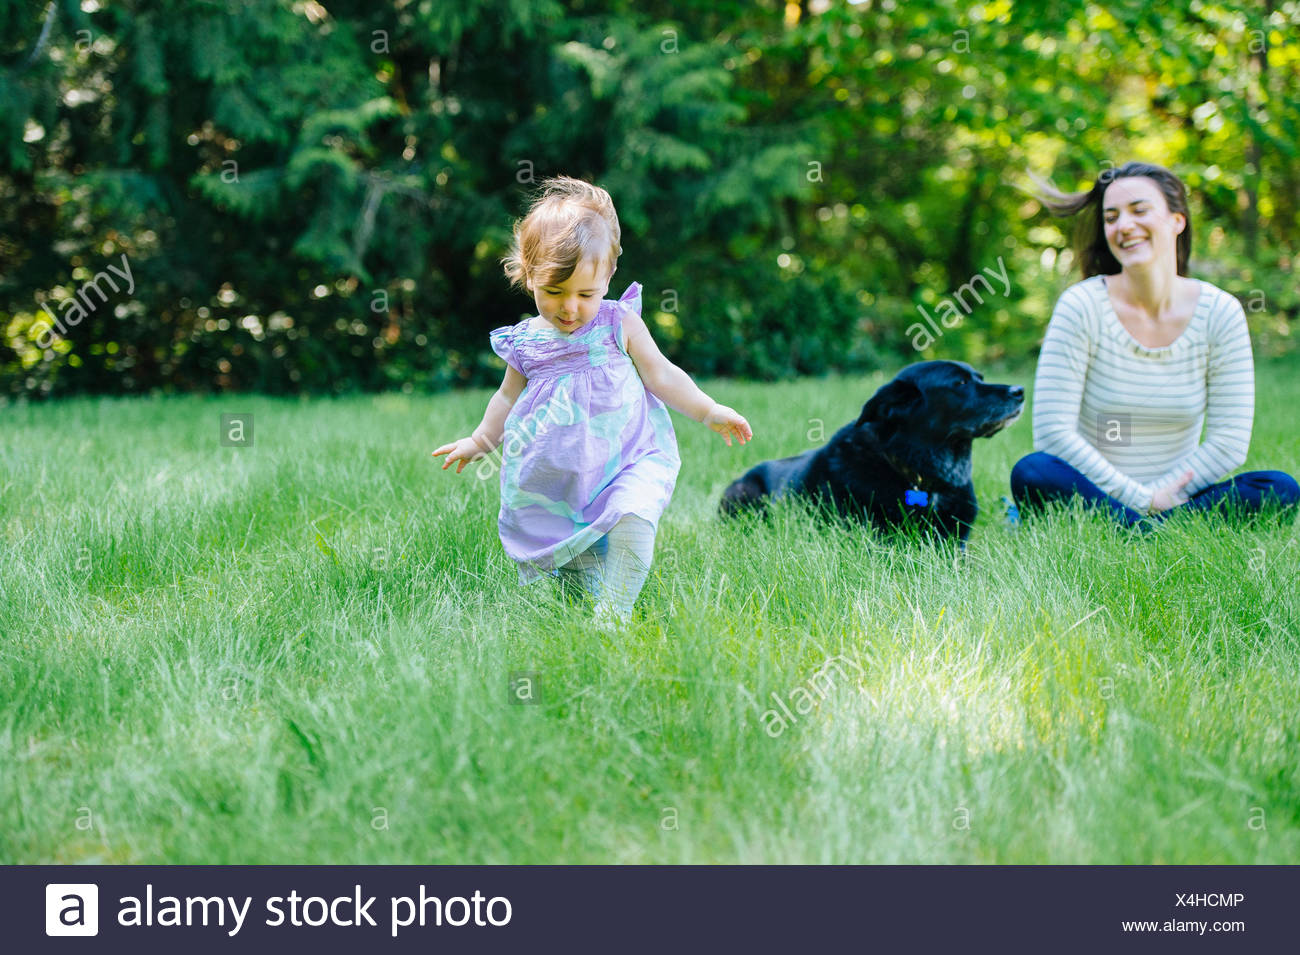 Female toddler running away from mother in park Stock Photo